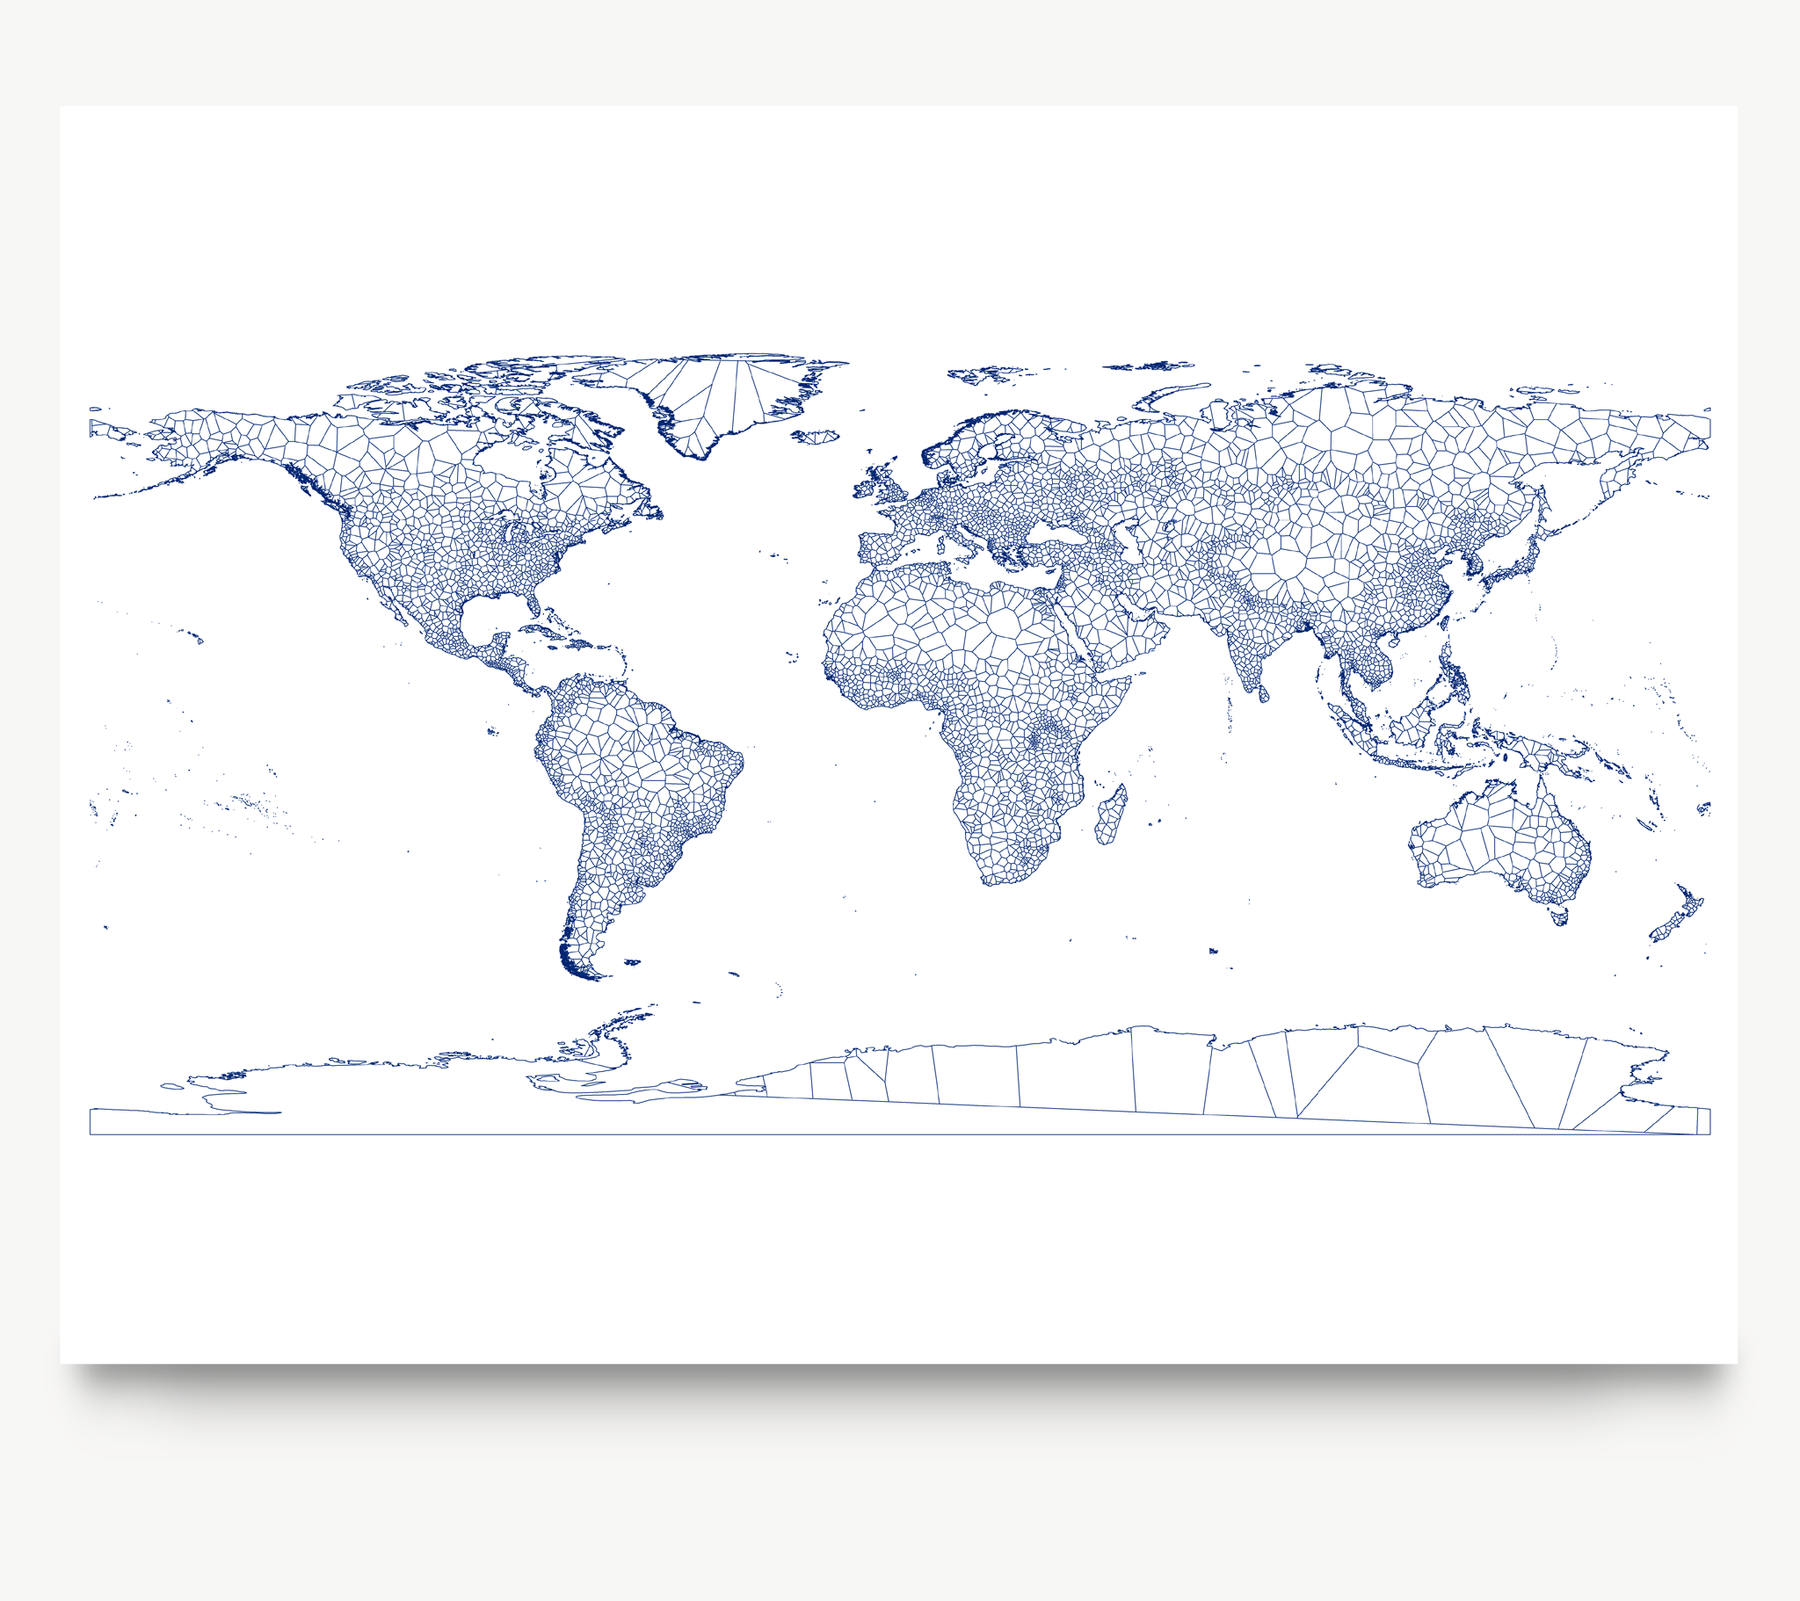 World Map Print, Earth, Geometric on updated world map, defined world map, illustrated world map, the first world map, unique world map, painted world map, edited world map, led world map, design world map, detailed world map, adjusted world map, drawn world map, easy world map, known world map, outline world map, enlarged world map, constructed world map, creative world map, corrected world map,